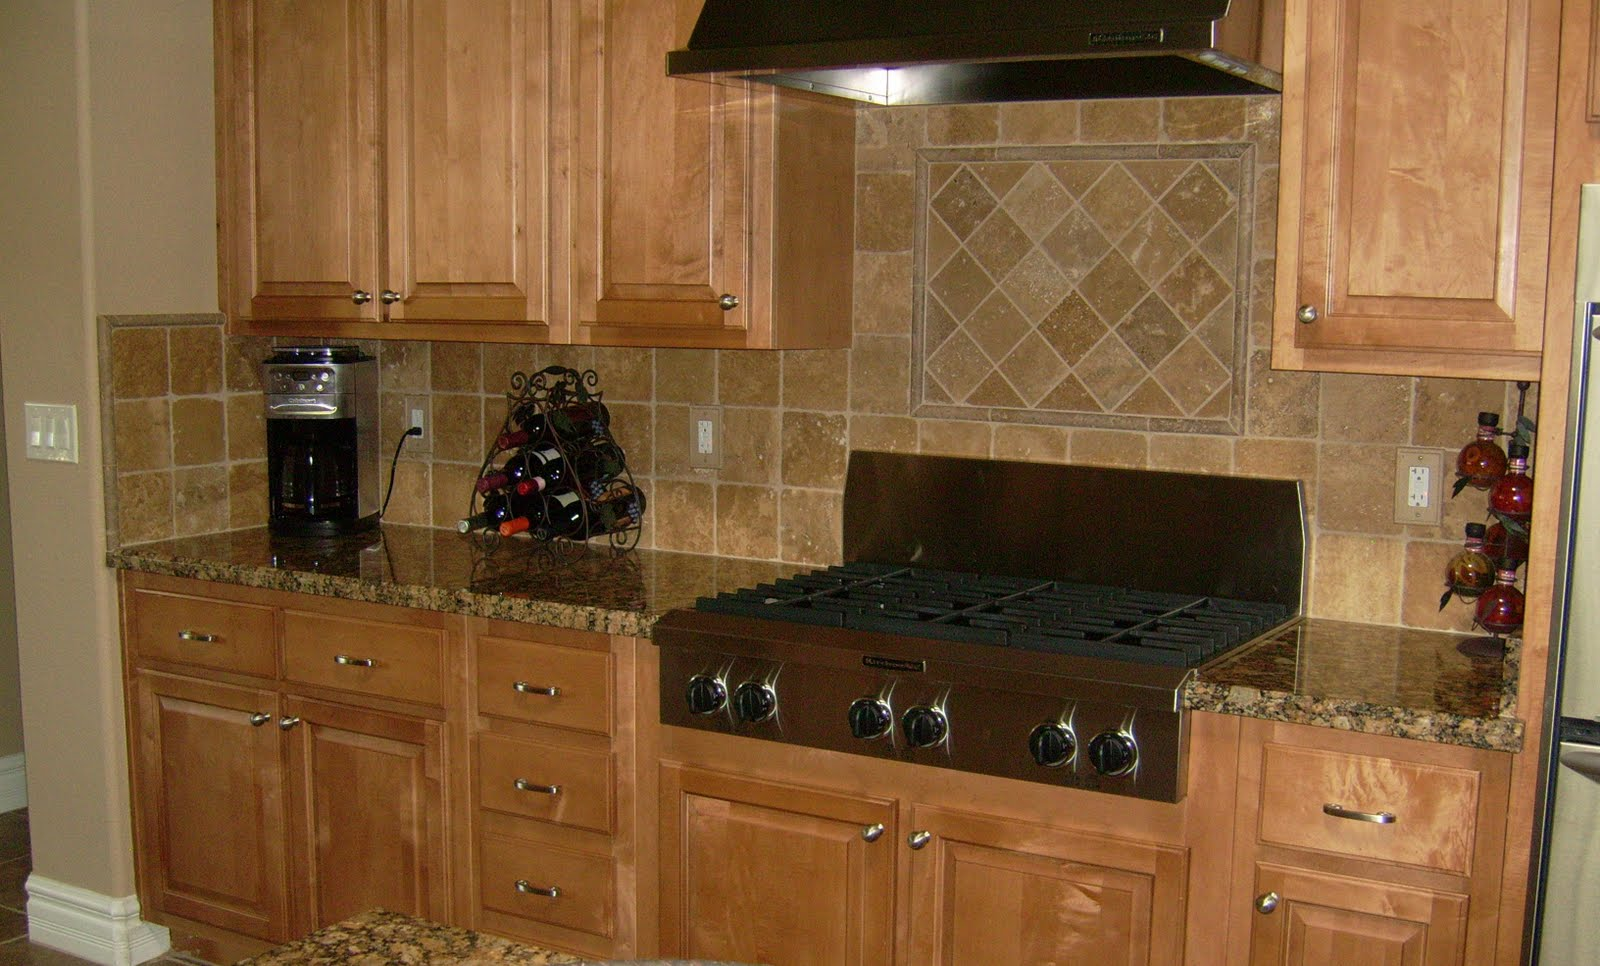 kitchen remodeling picture on Pictures Kitchen Backsplash Ideas 6x6 Tumbled Stone Kitchen Backsplash ...